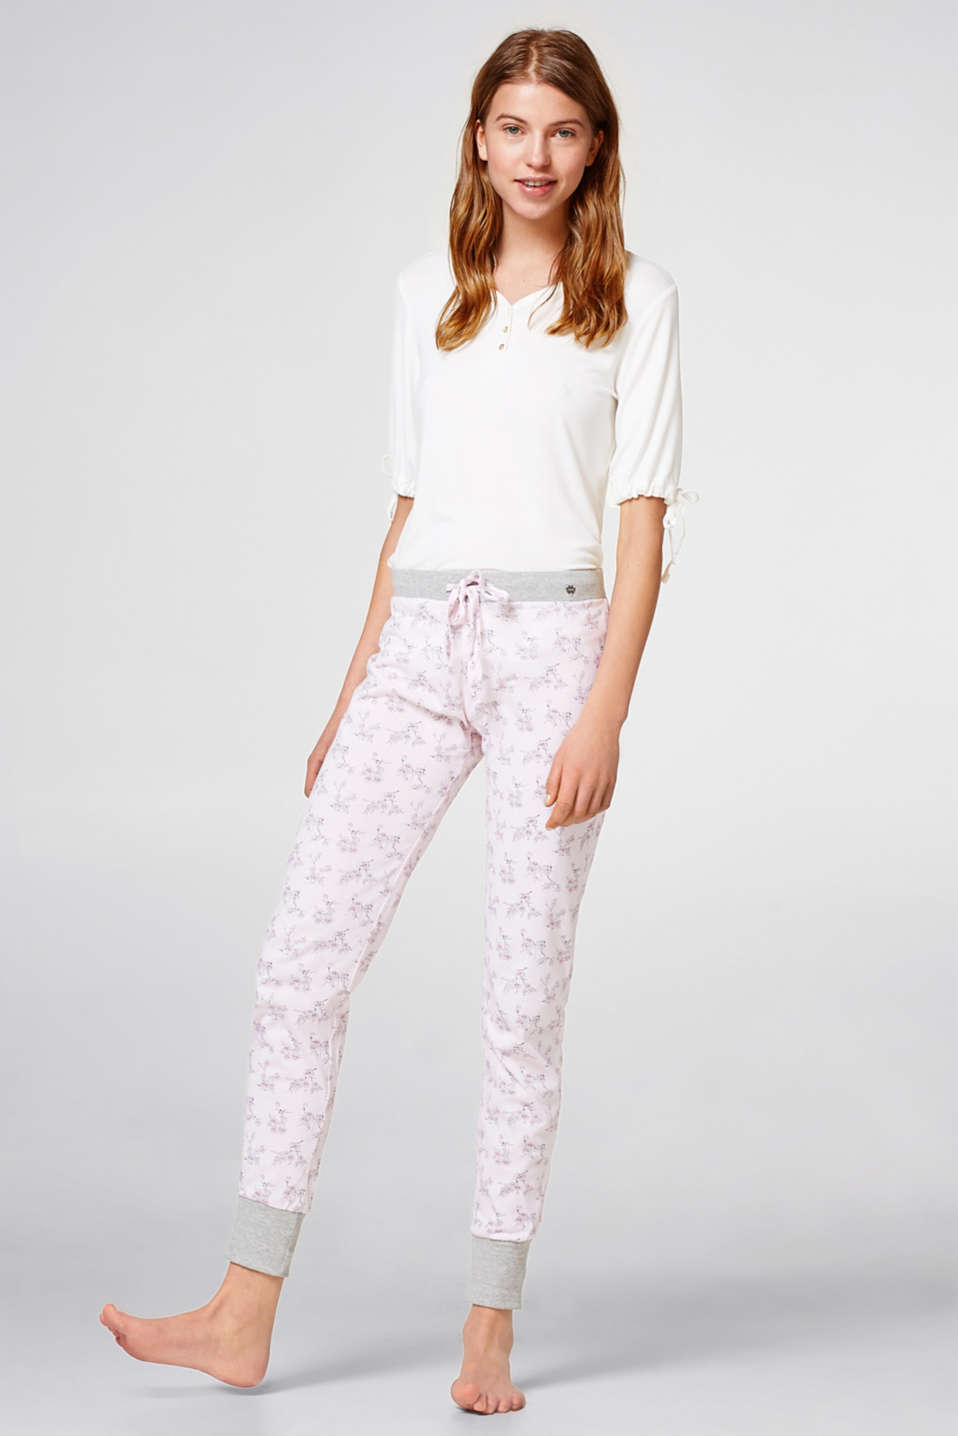 Esprit - Pyjama bottoms, 100% cotton